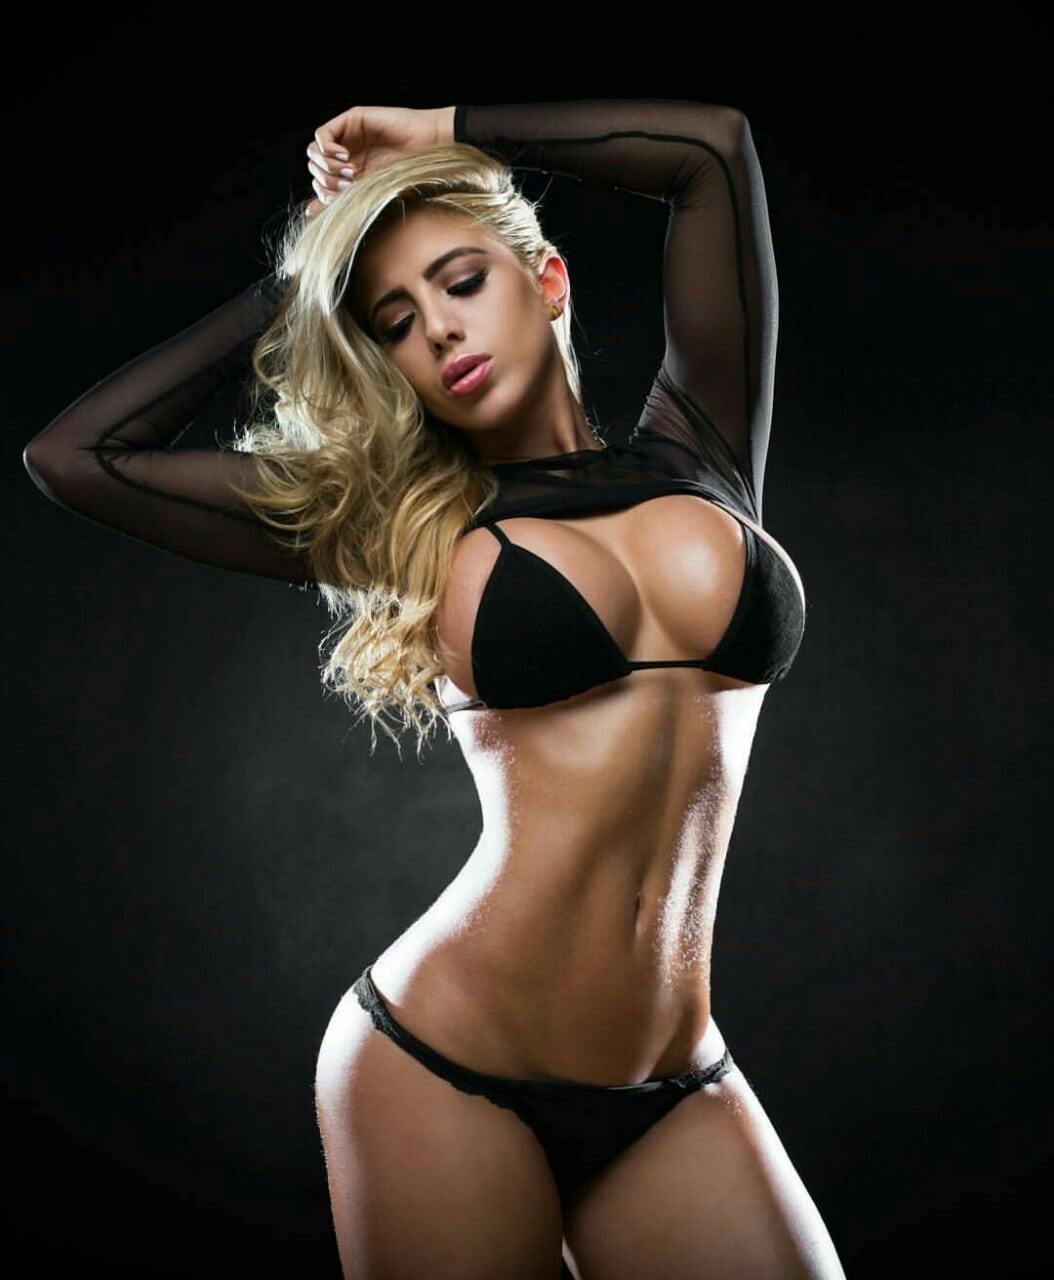 2019 Valeria Orsini naked (89 photos), Ass, Fappening, Instagram, butt 2006